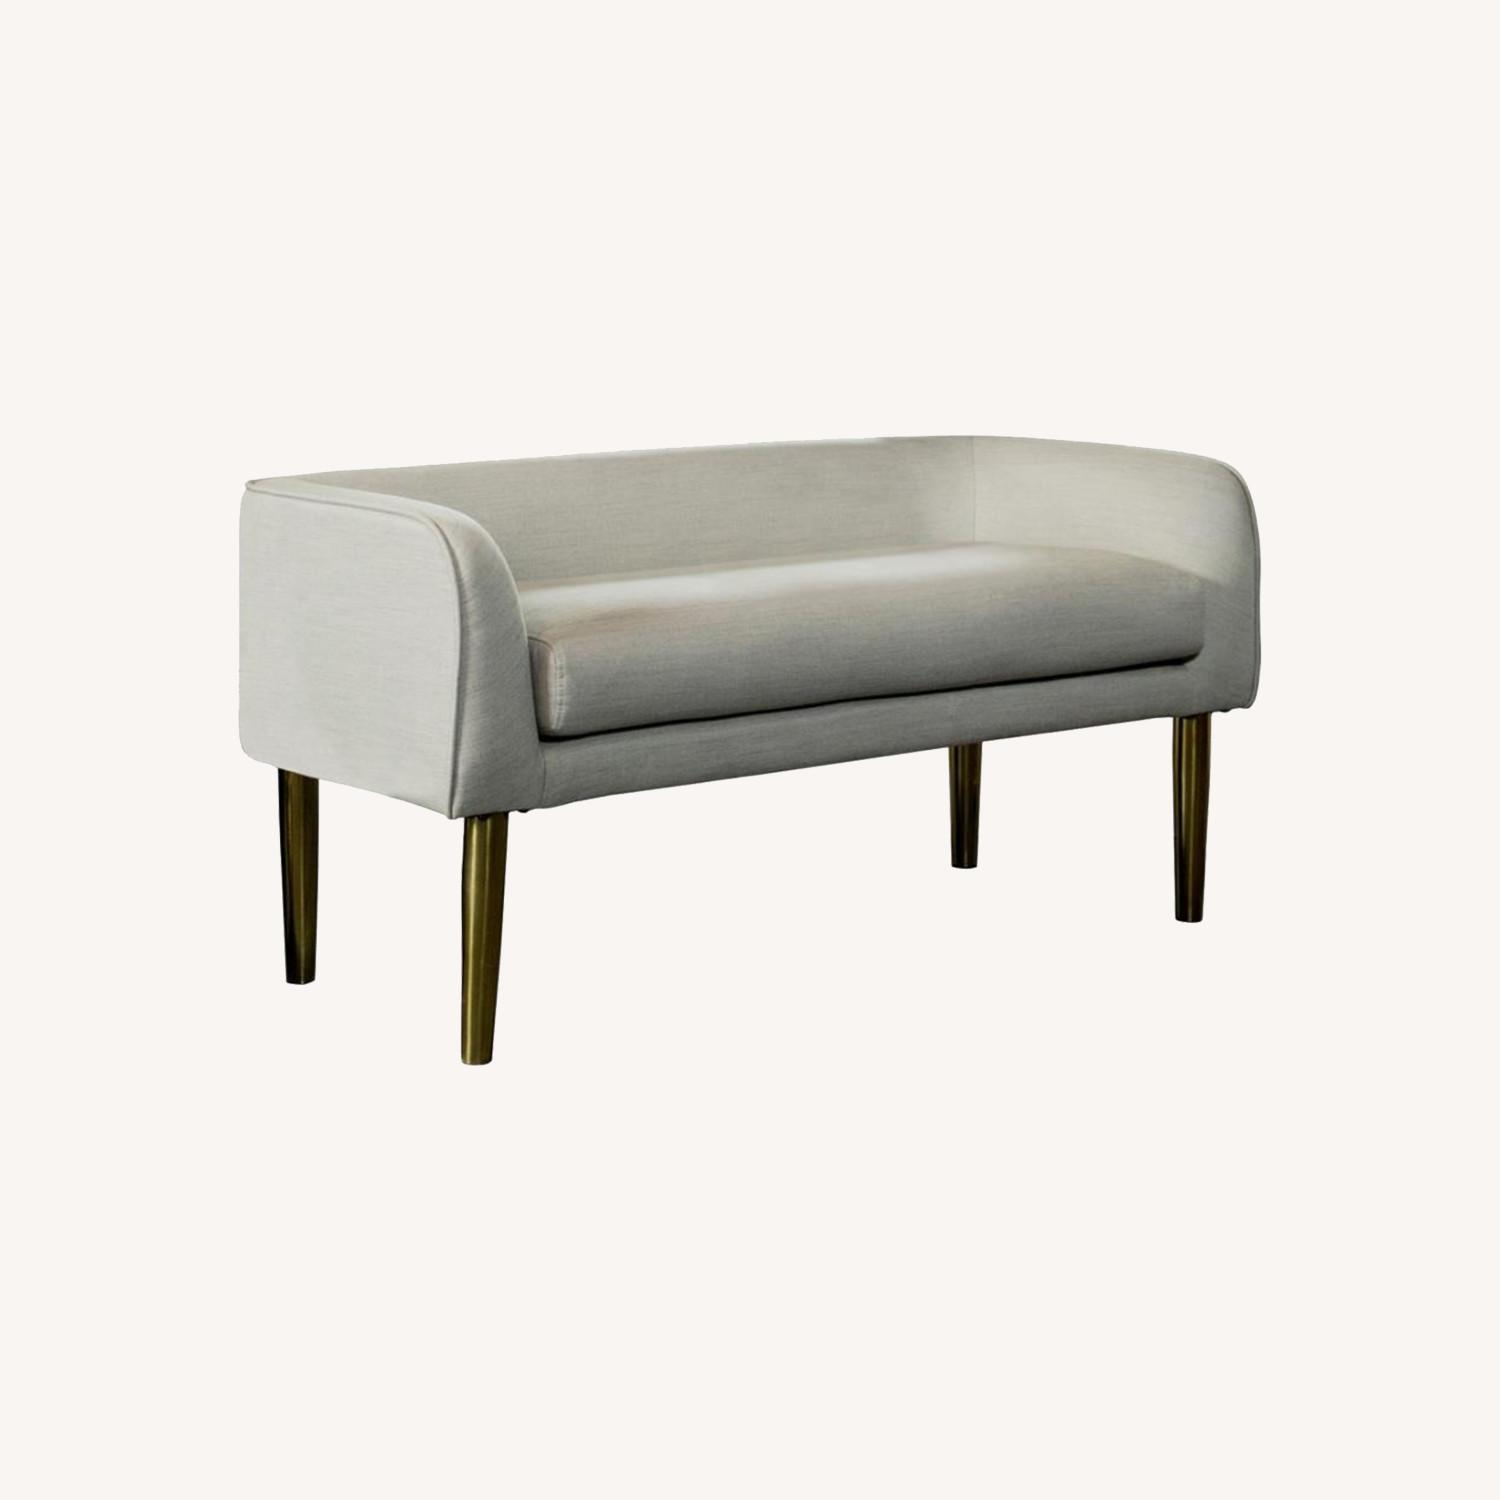 Bench In Light Grey Fabric W/ Tapered Legs - image-7